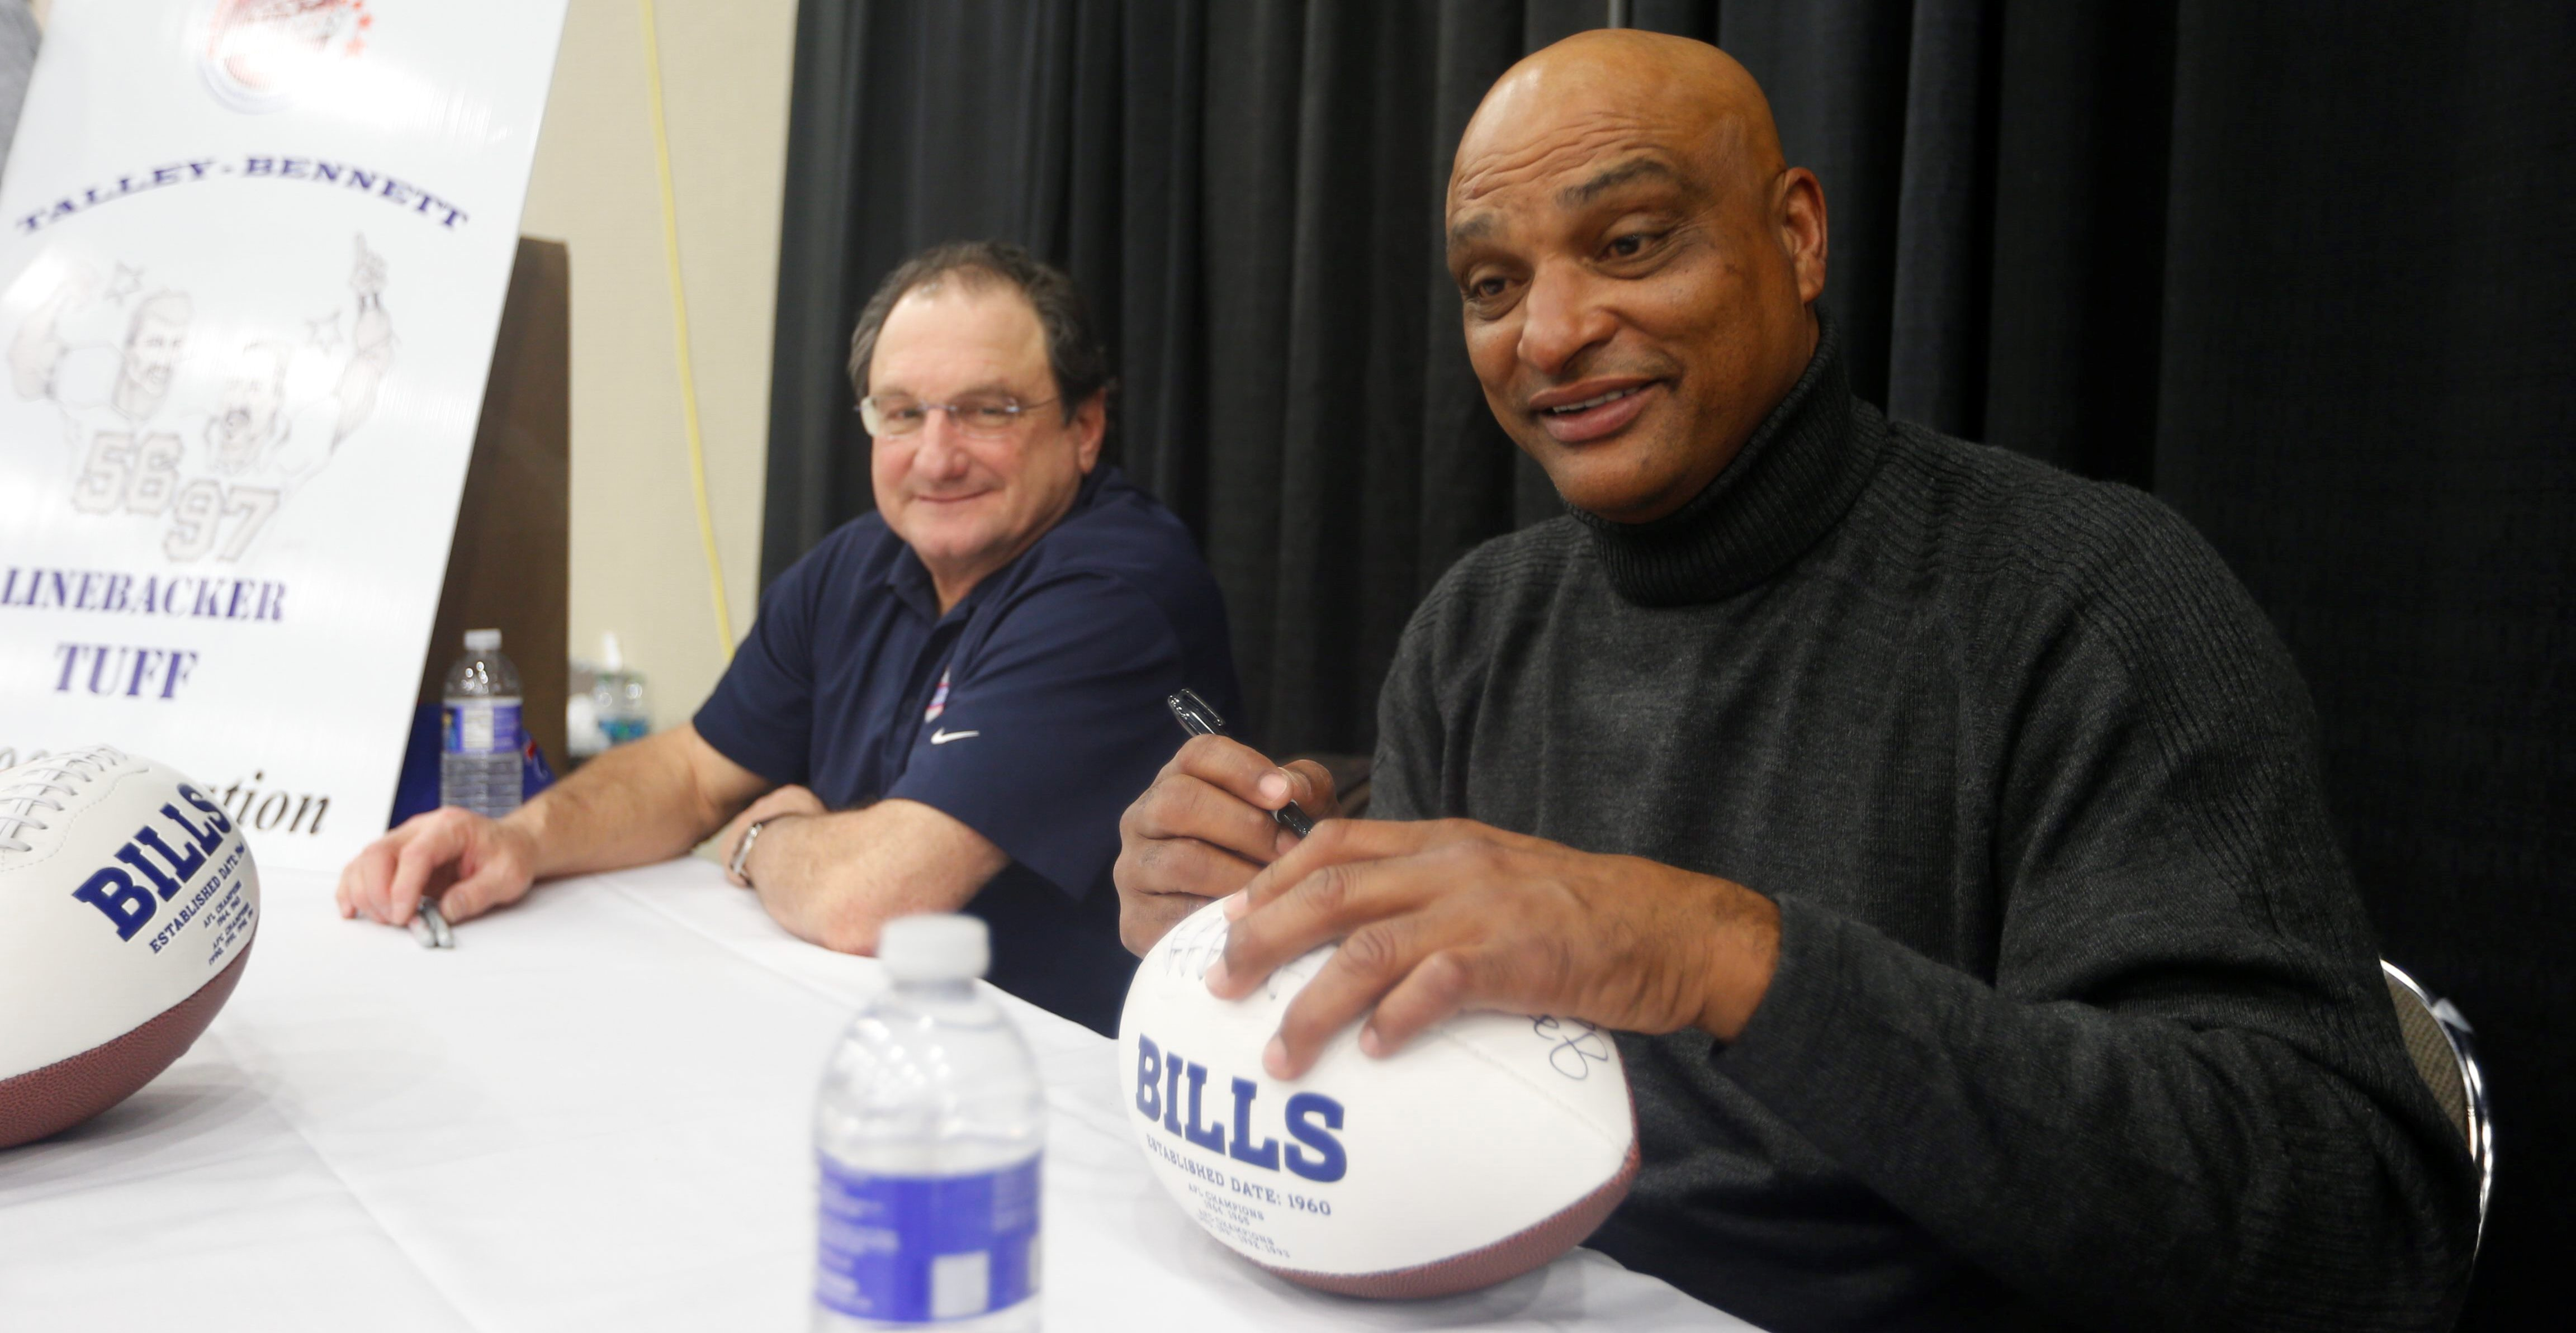 Darryl Talley, right, signs autographs at the Buffalo Auto Show, along with fellow Bill Lou Piccone, in February. (John Hickey/News file photo)